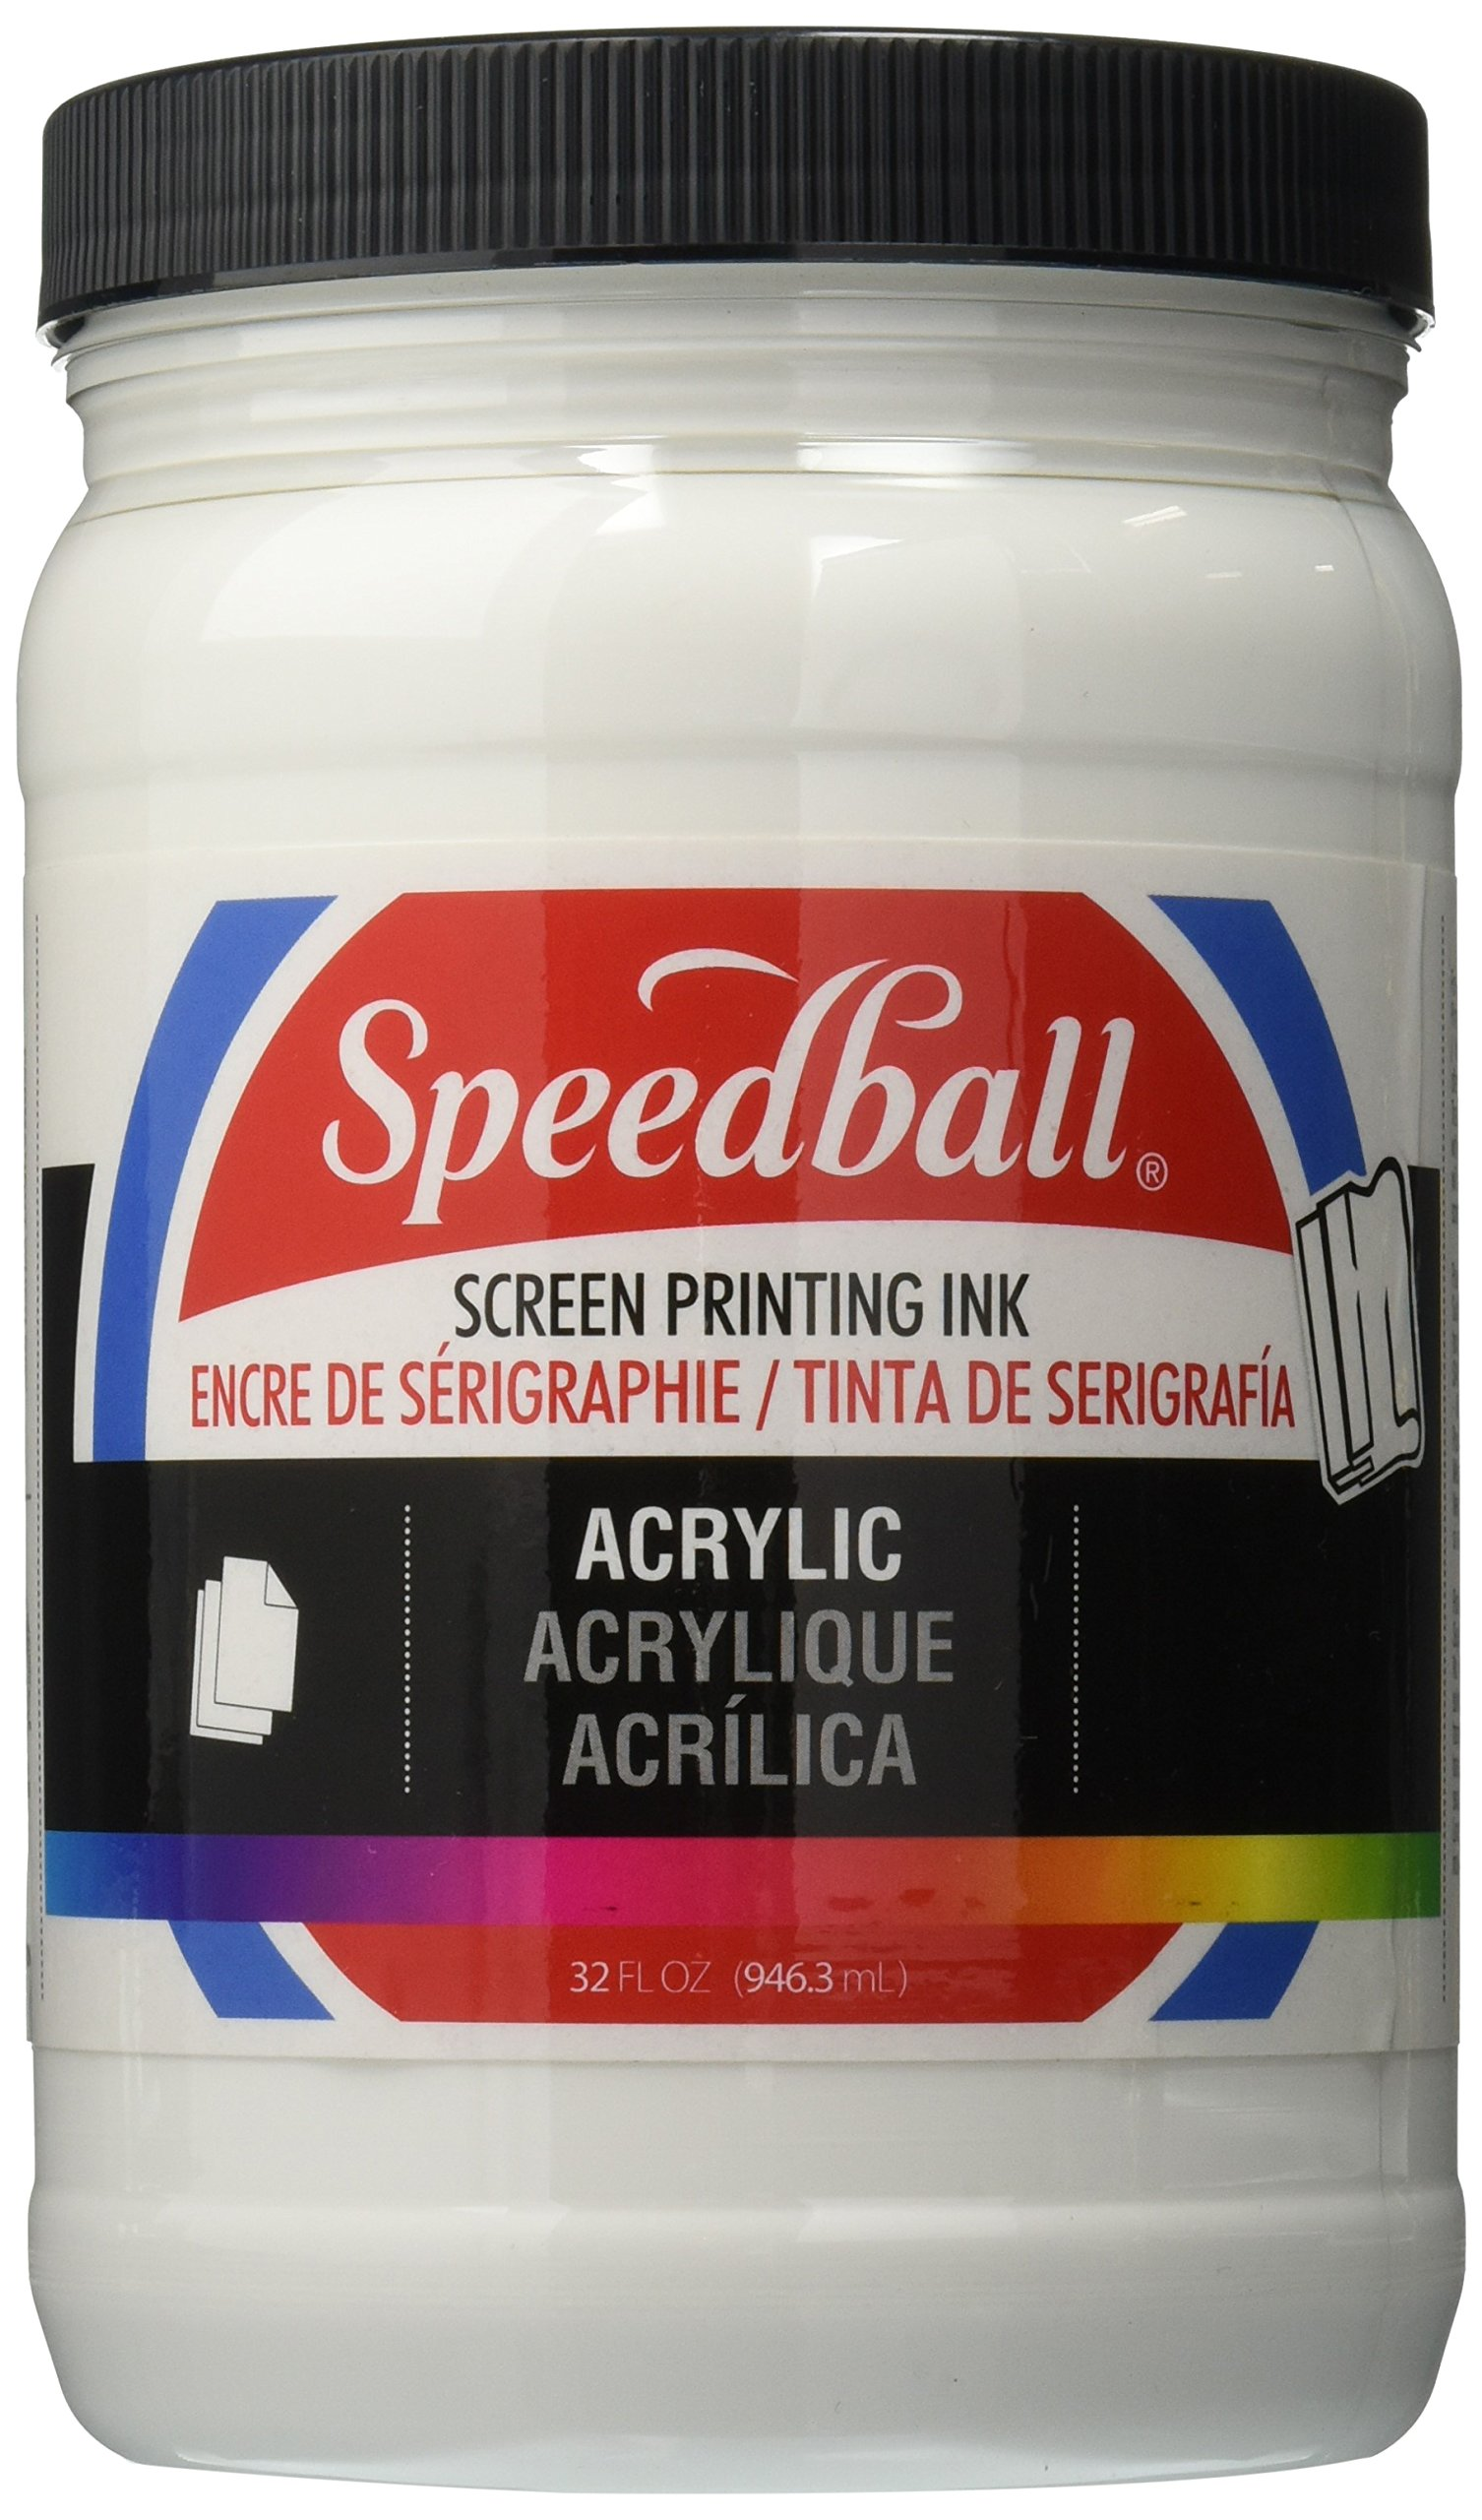 Speedball 4640 Acrylic Screen Printing Ink, 32 oz. Jar, 3.63'' Height, 3.63'' Width, 6.13'' Length, White by Speedball